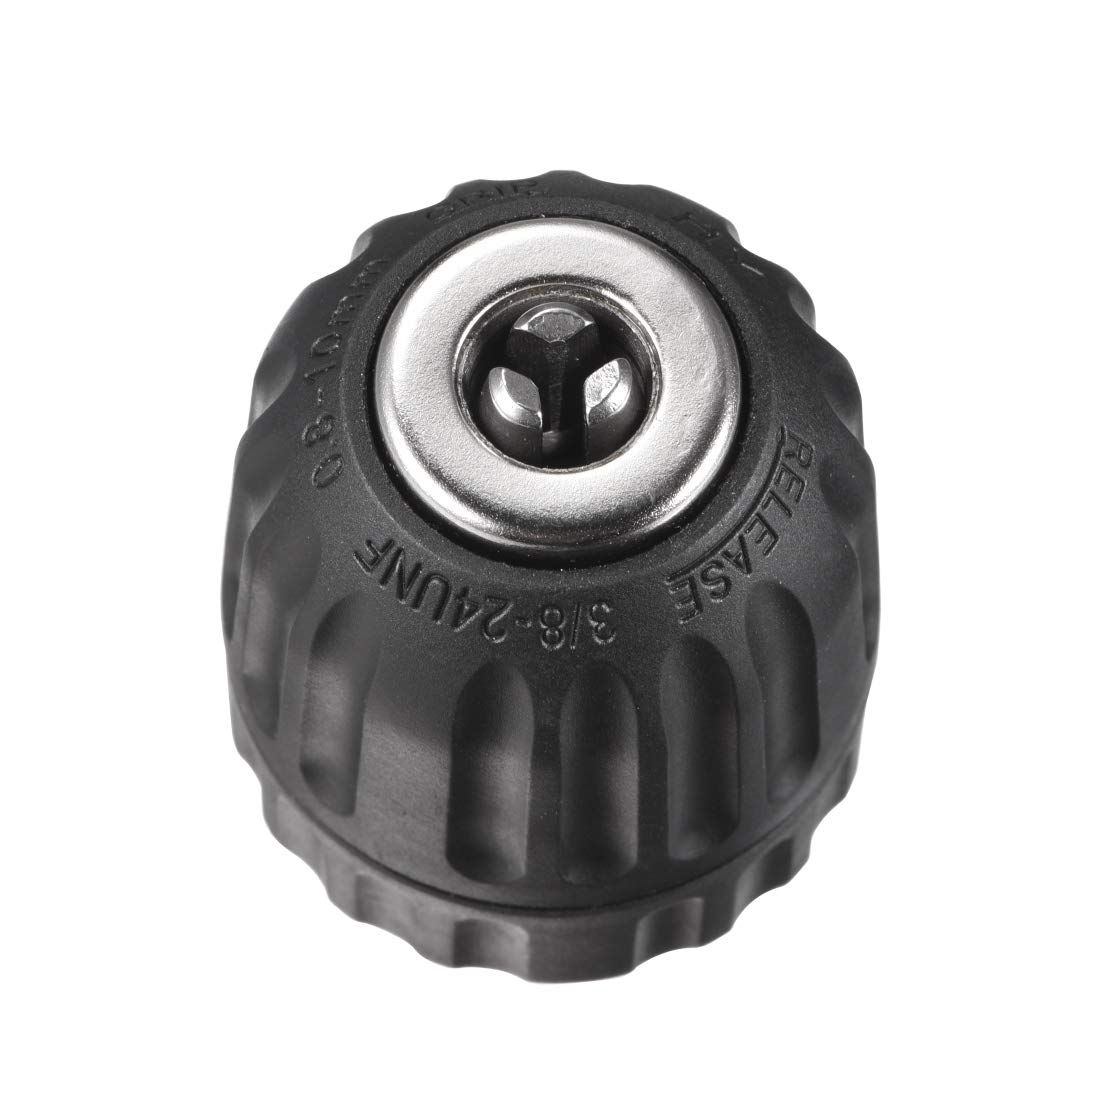 uxcell/® 1//2 Keyless Drill Chuck 3-Jaw Keyless Chuck with SDS-Plus Round Shank 1//2-20UNF to Hold 2-13mm Drill Bits for Impact Driver